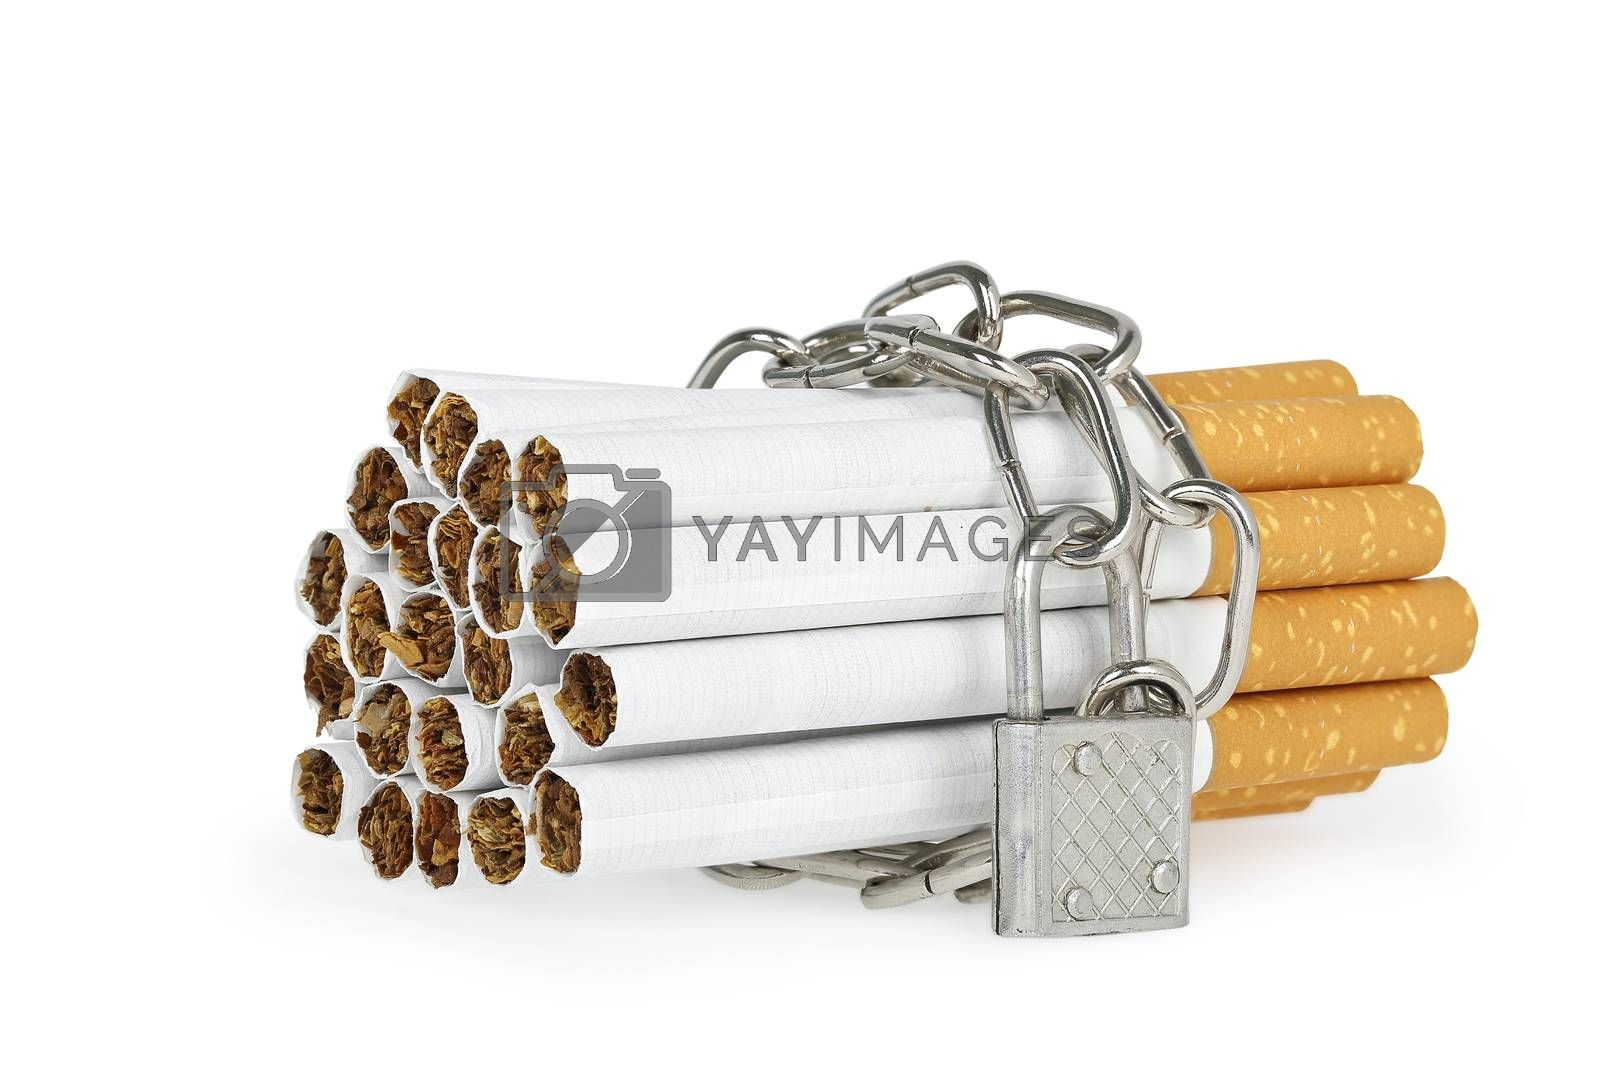 chain with padlock around cigarettes on white